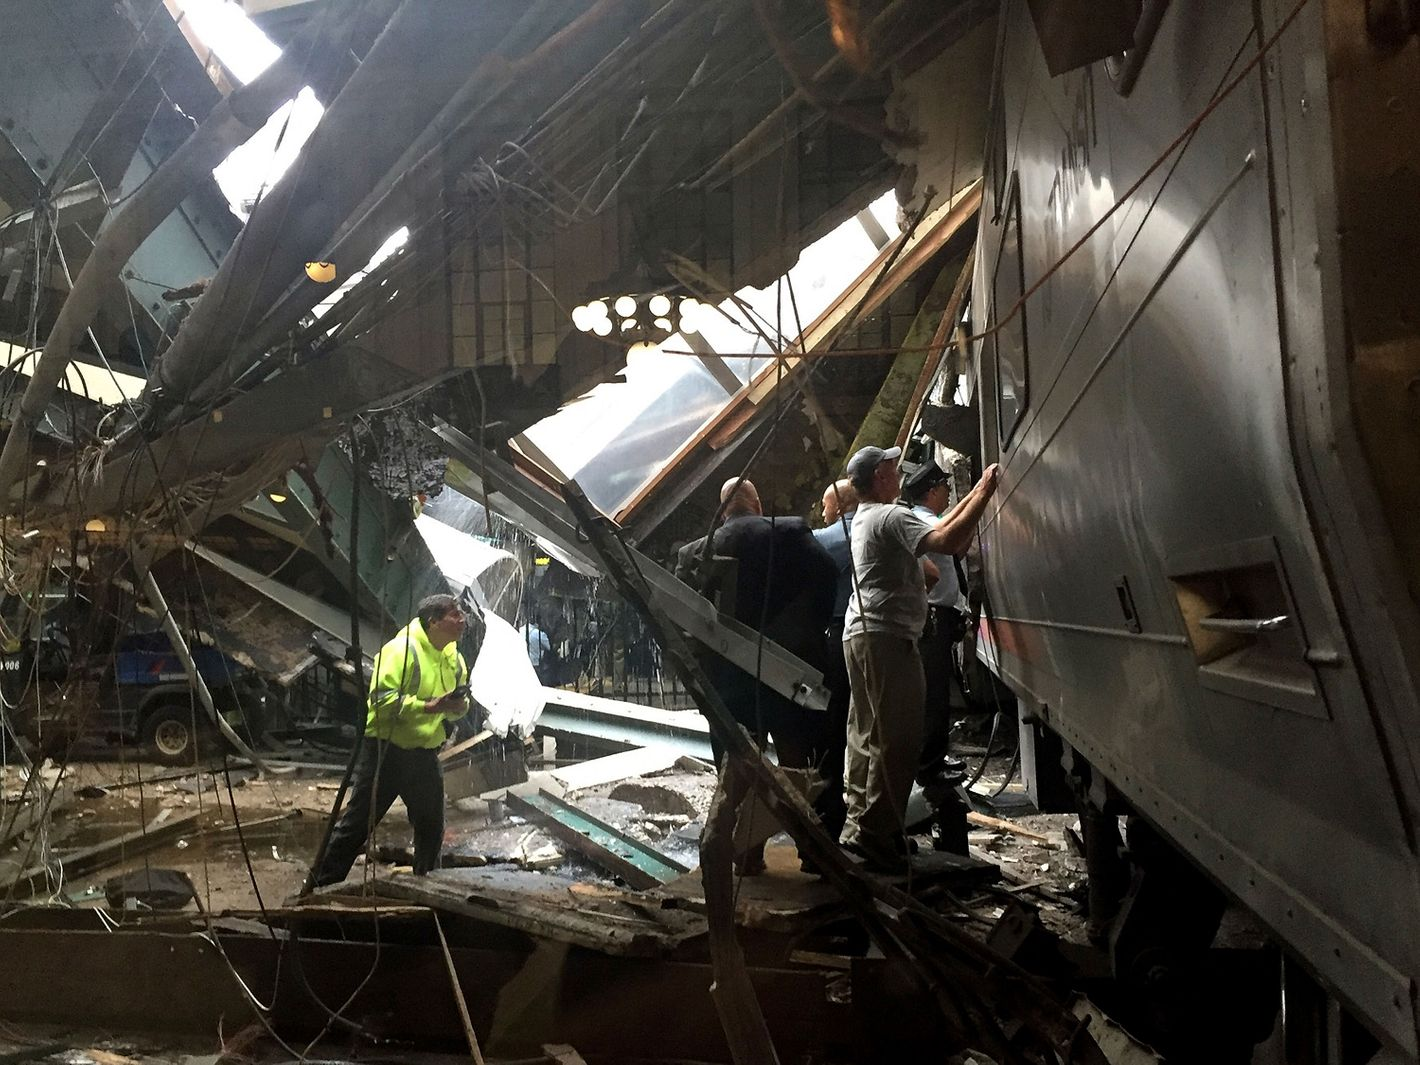 1st recorder recovered from train crash wasn't working